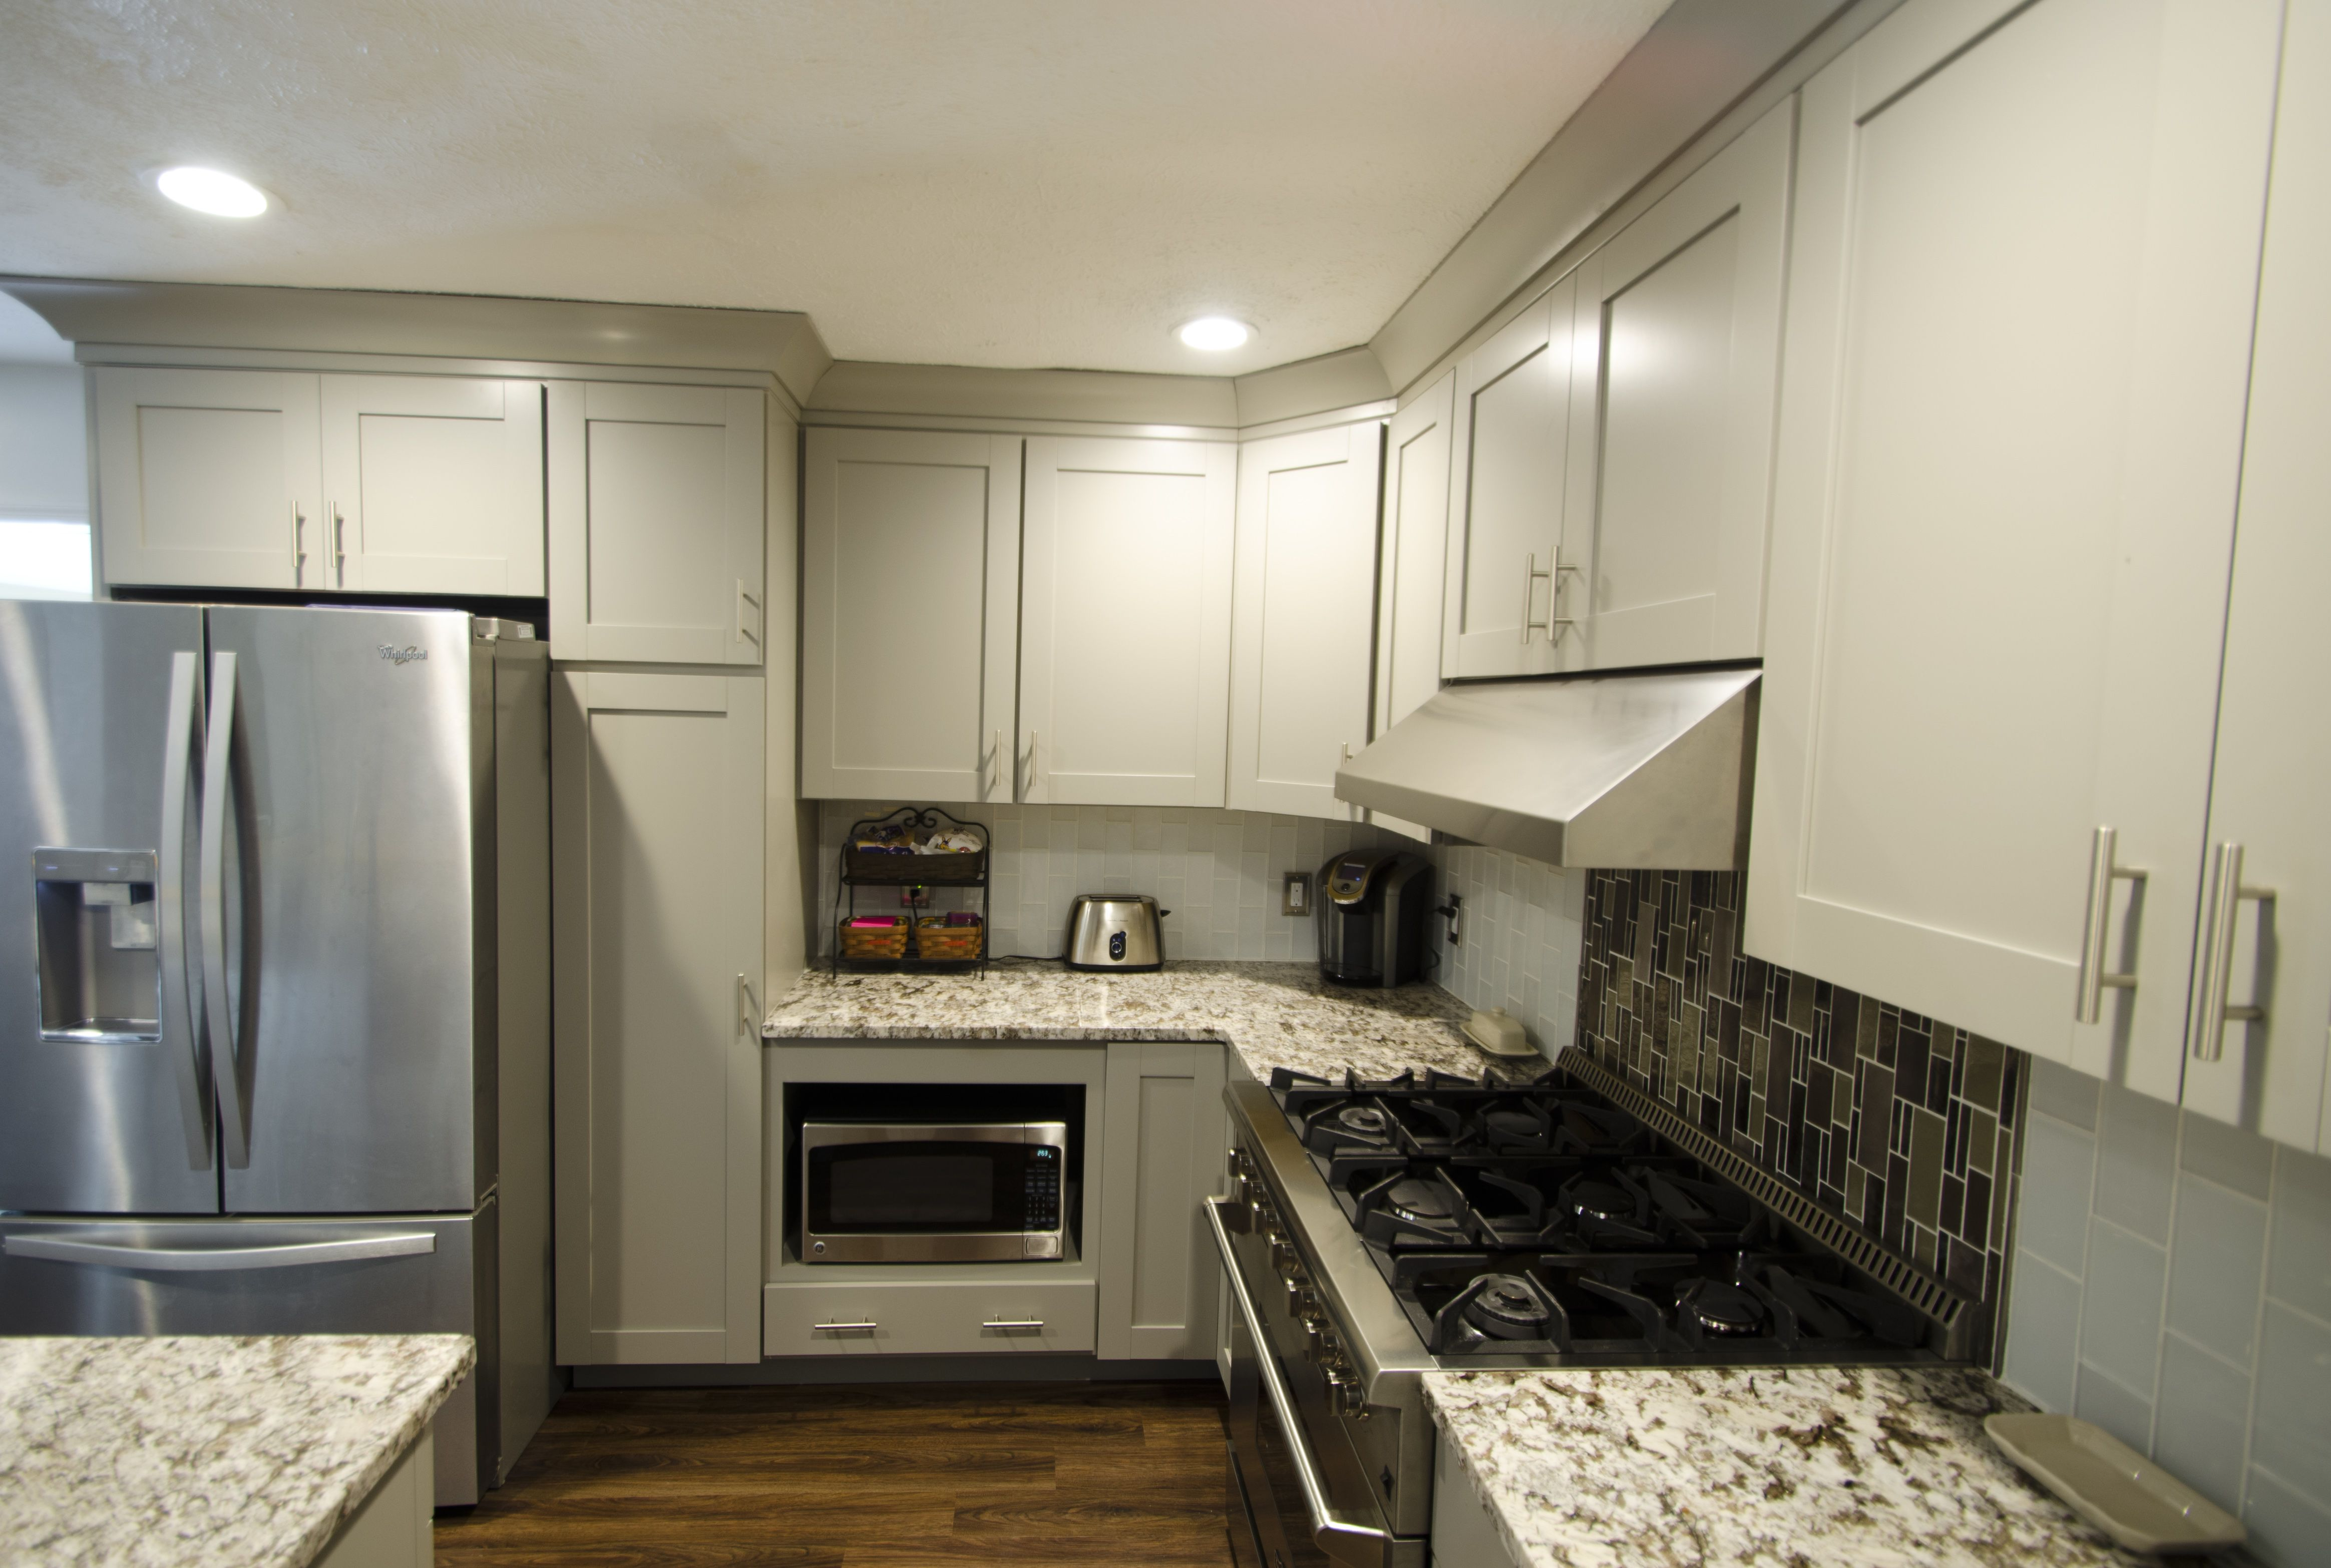 This fresh diamond kitchen remodel was completed by lowes project specialist of interiors marcus lehman